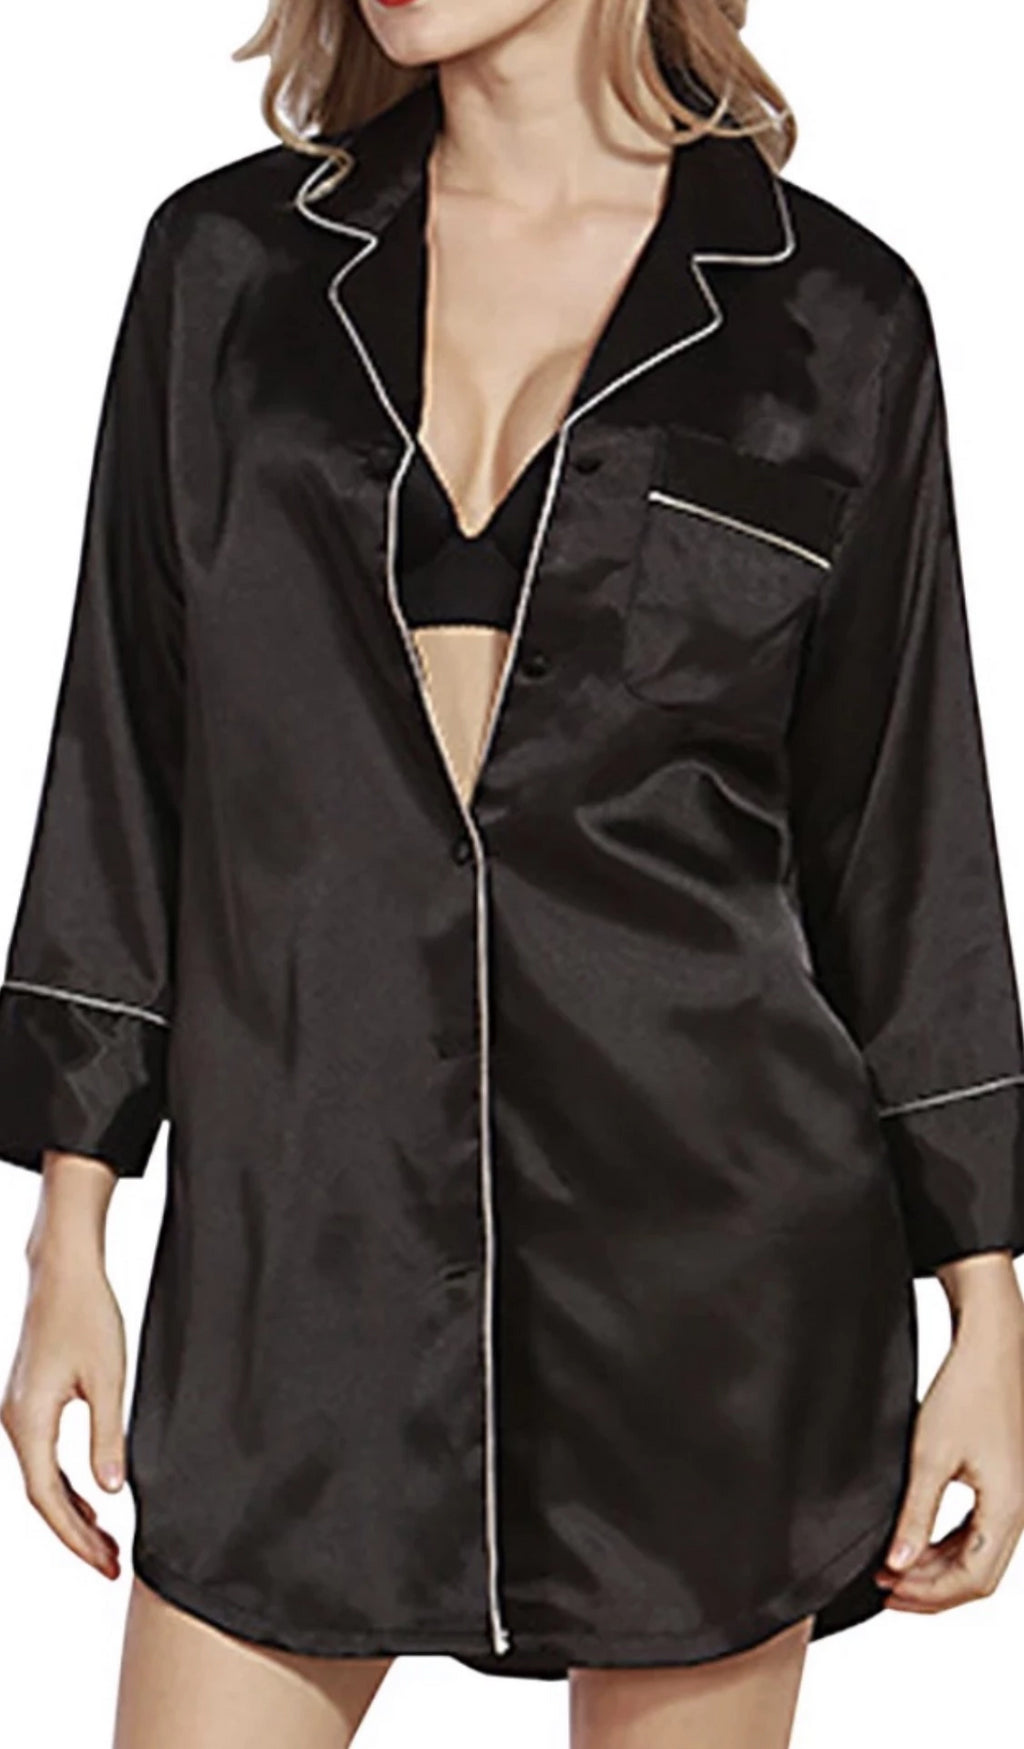 Nicole 100% Pure Mulberry Silk Classic Long Sleeve Button Down Nightgown